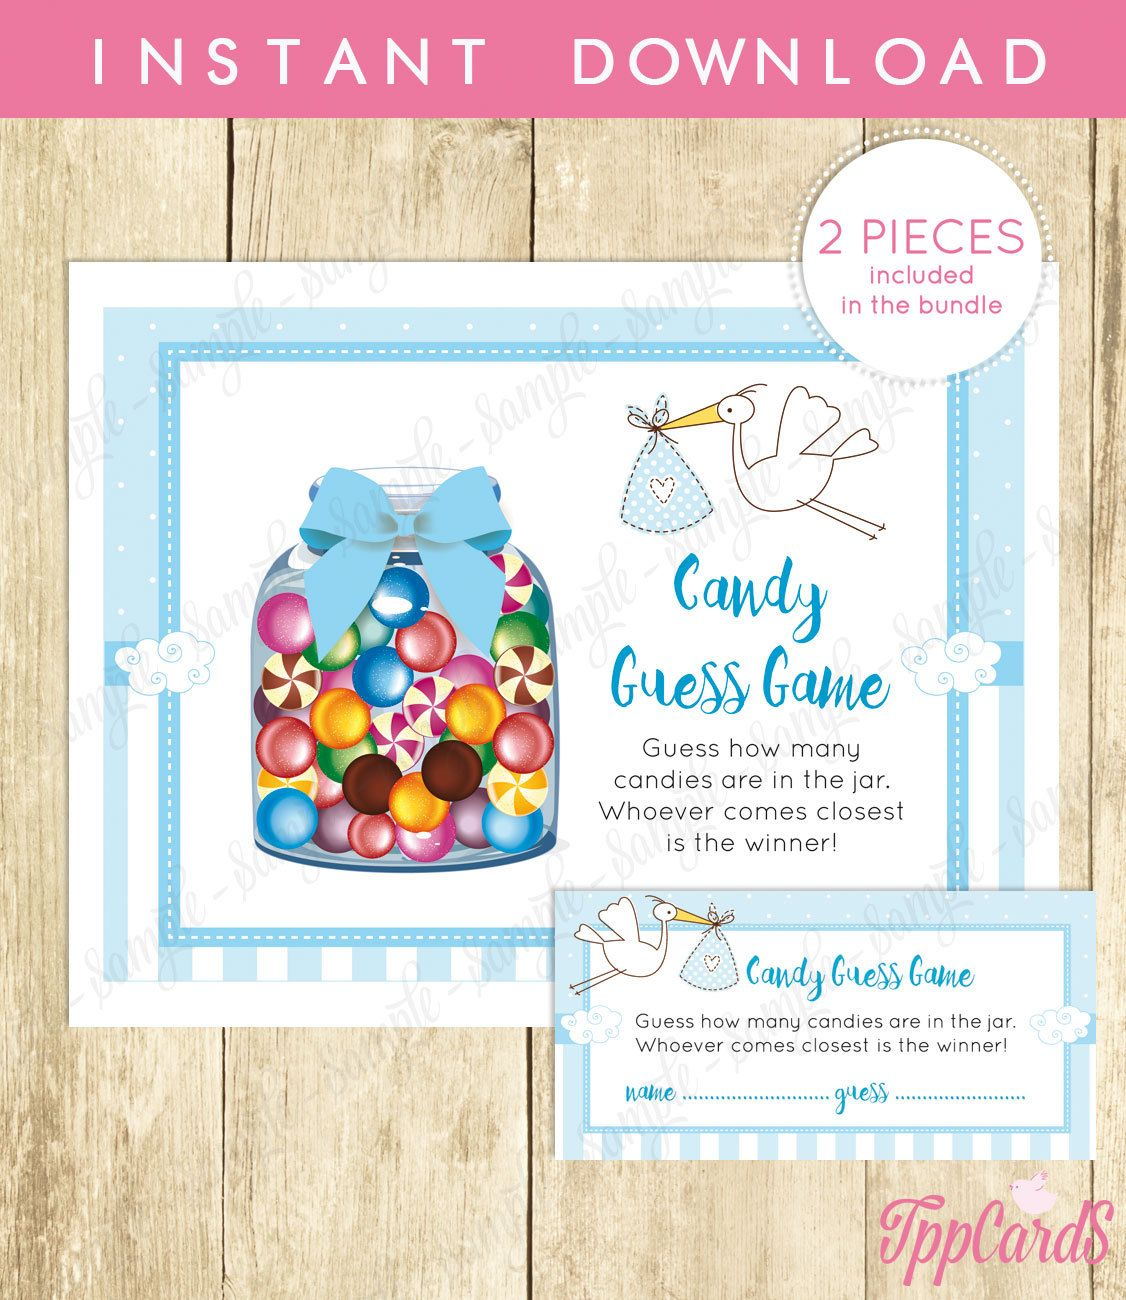 New To Tppcards On Etsy Stork Baby Shower Candy Guessing Game Printable